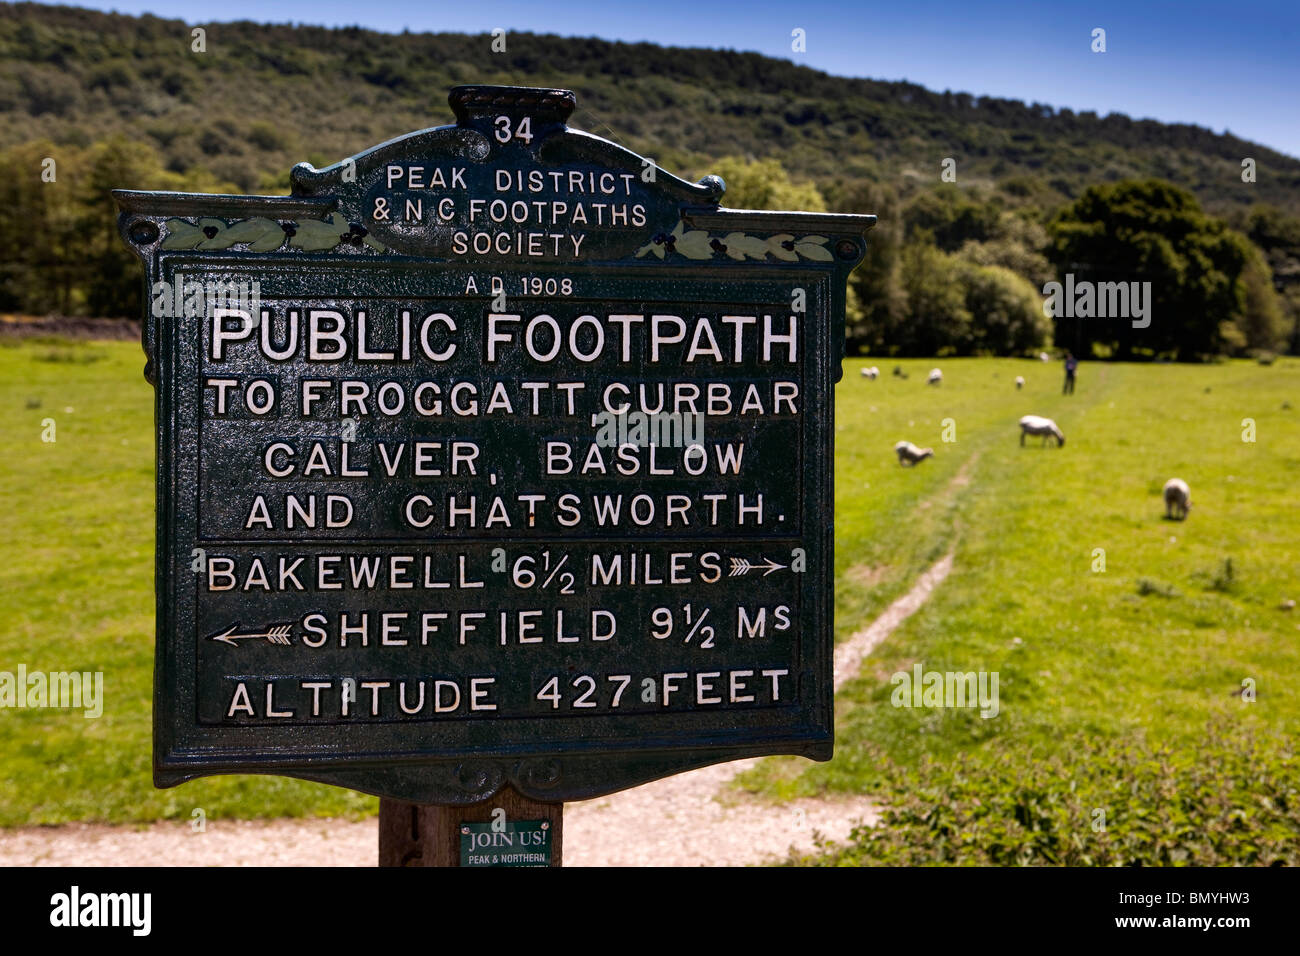 UK, Derbyshire, Peak District, Grindleford, Edwardian 1908 cast iron footpaths society sign - Stock Image